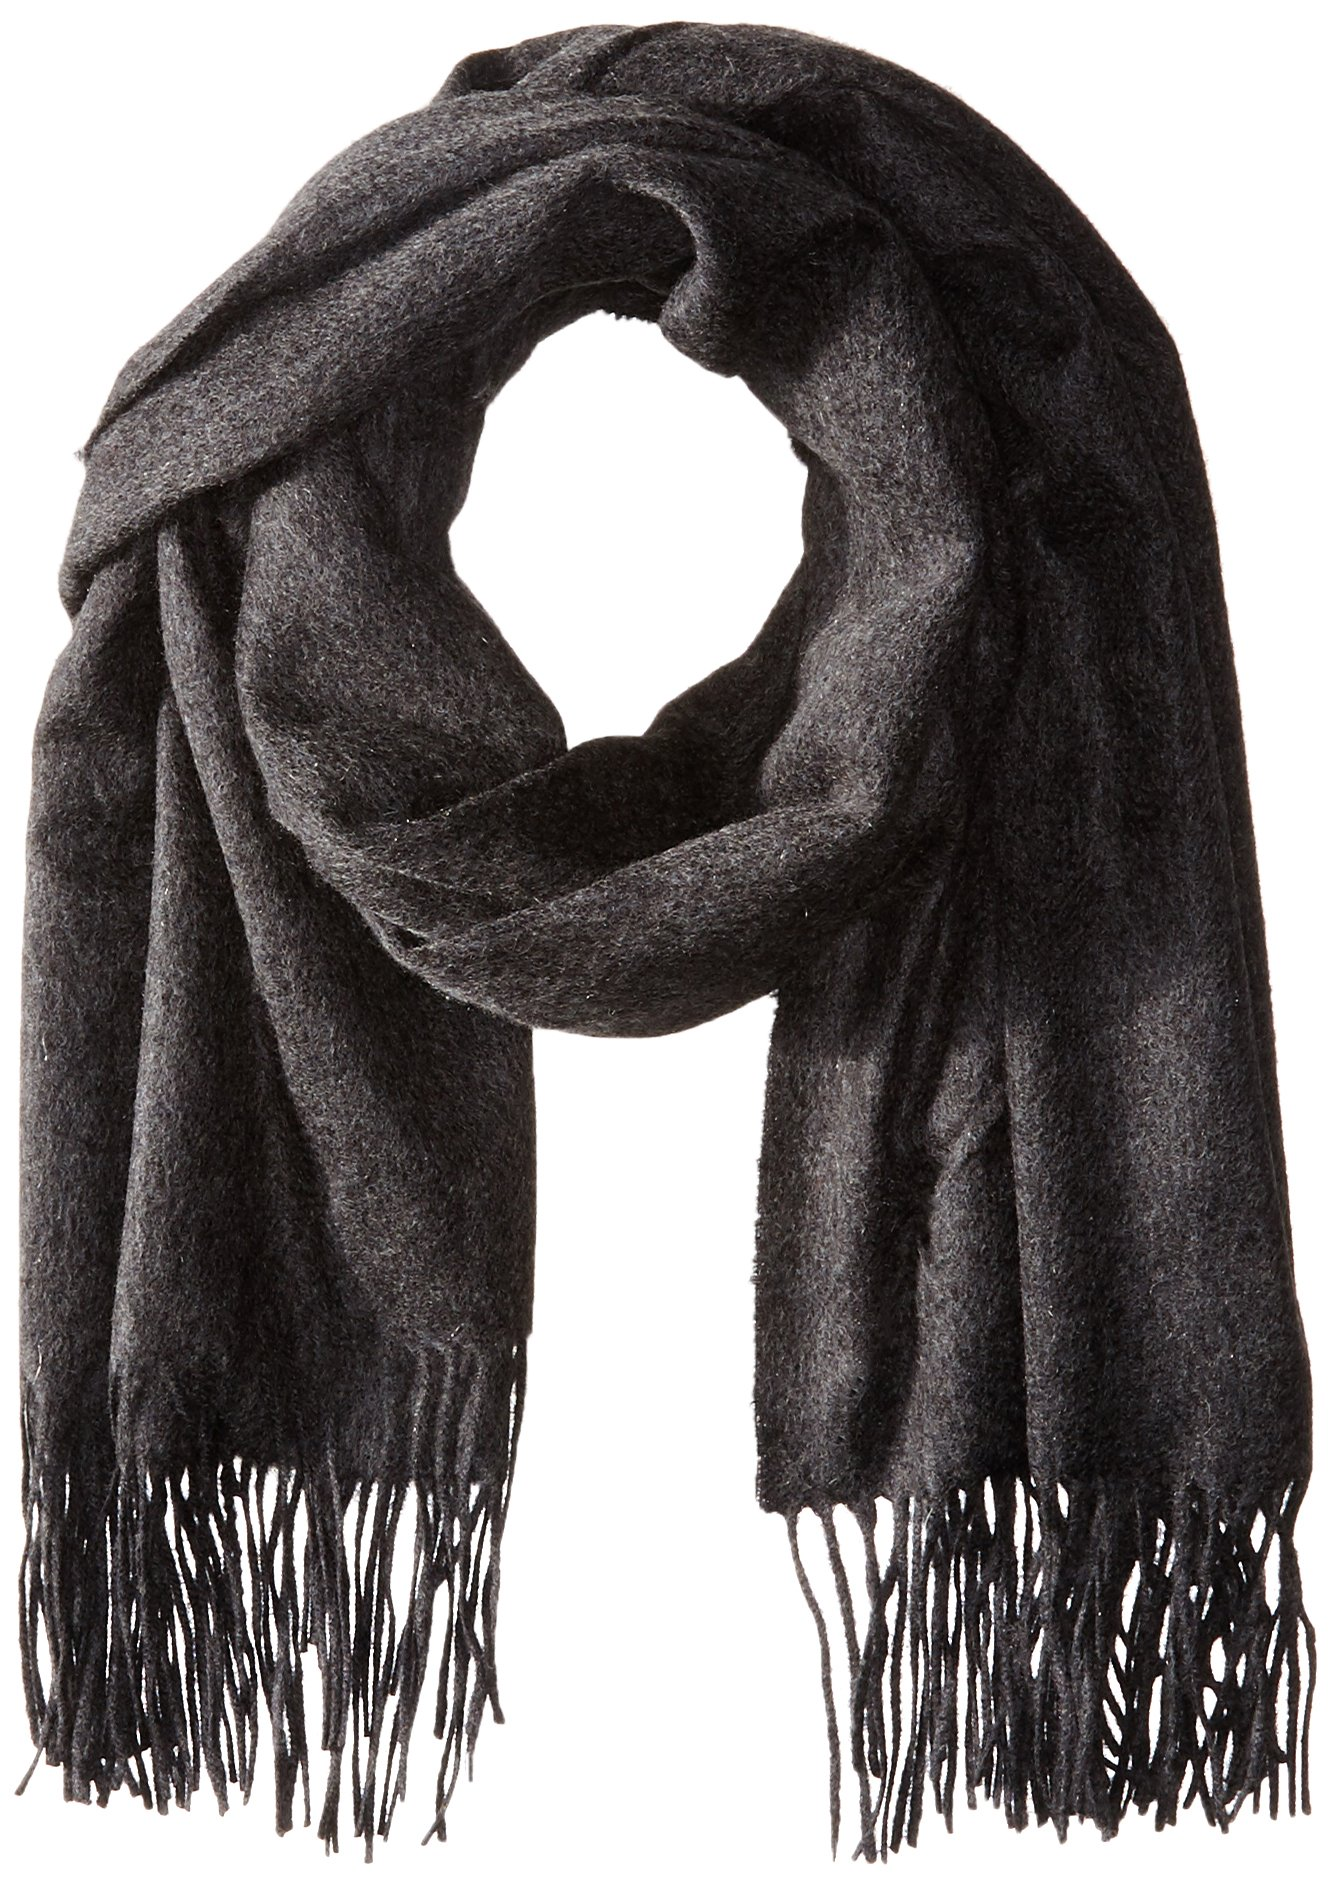 Sofia Cashmere Women's 100 Percent Cashmere Fringed Stole Scarf, Charcoal, One Size